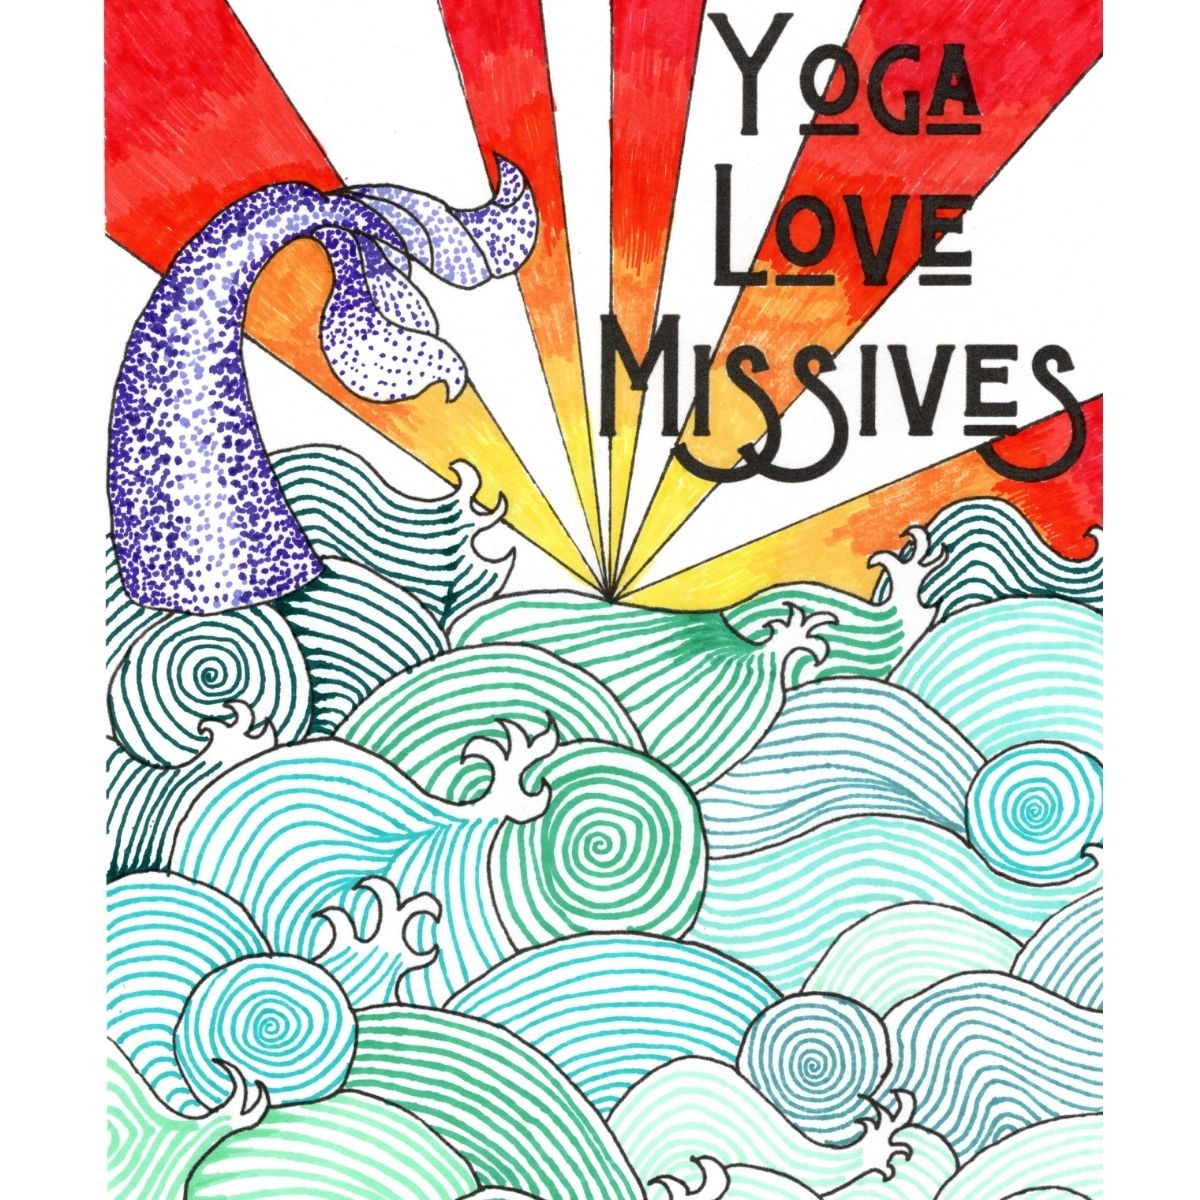 cover of the yoga love missives book showing a mermaid tail and waves